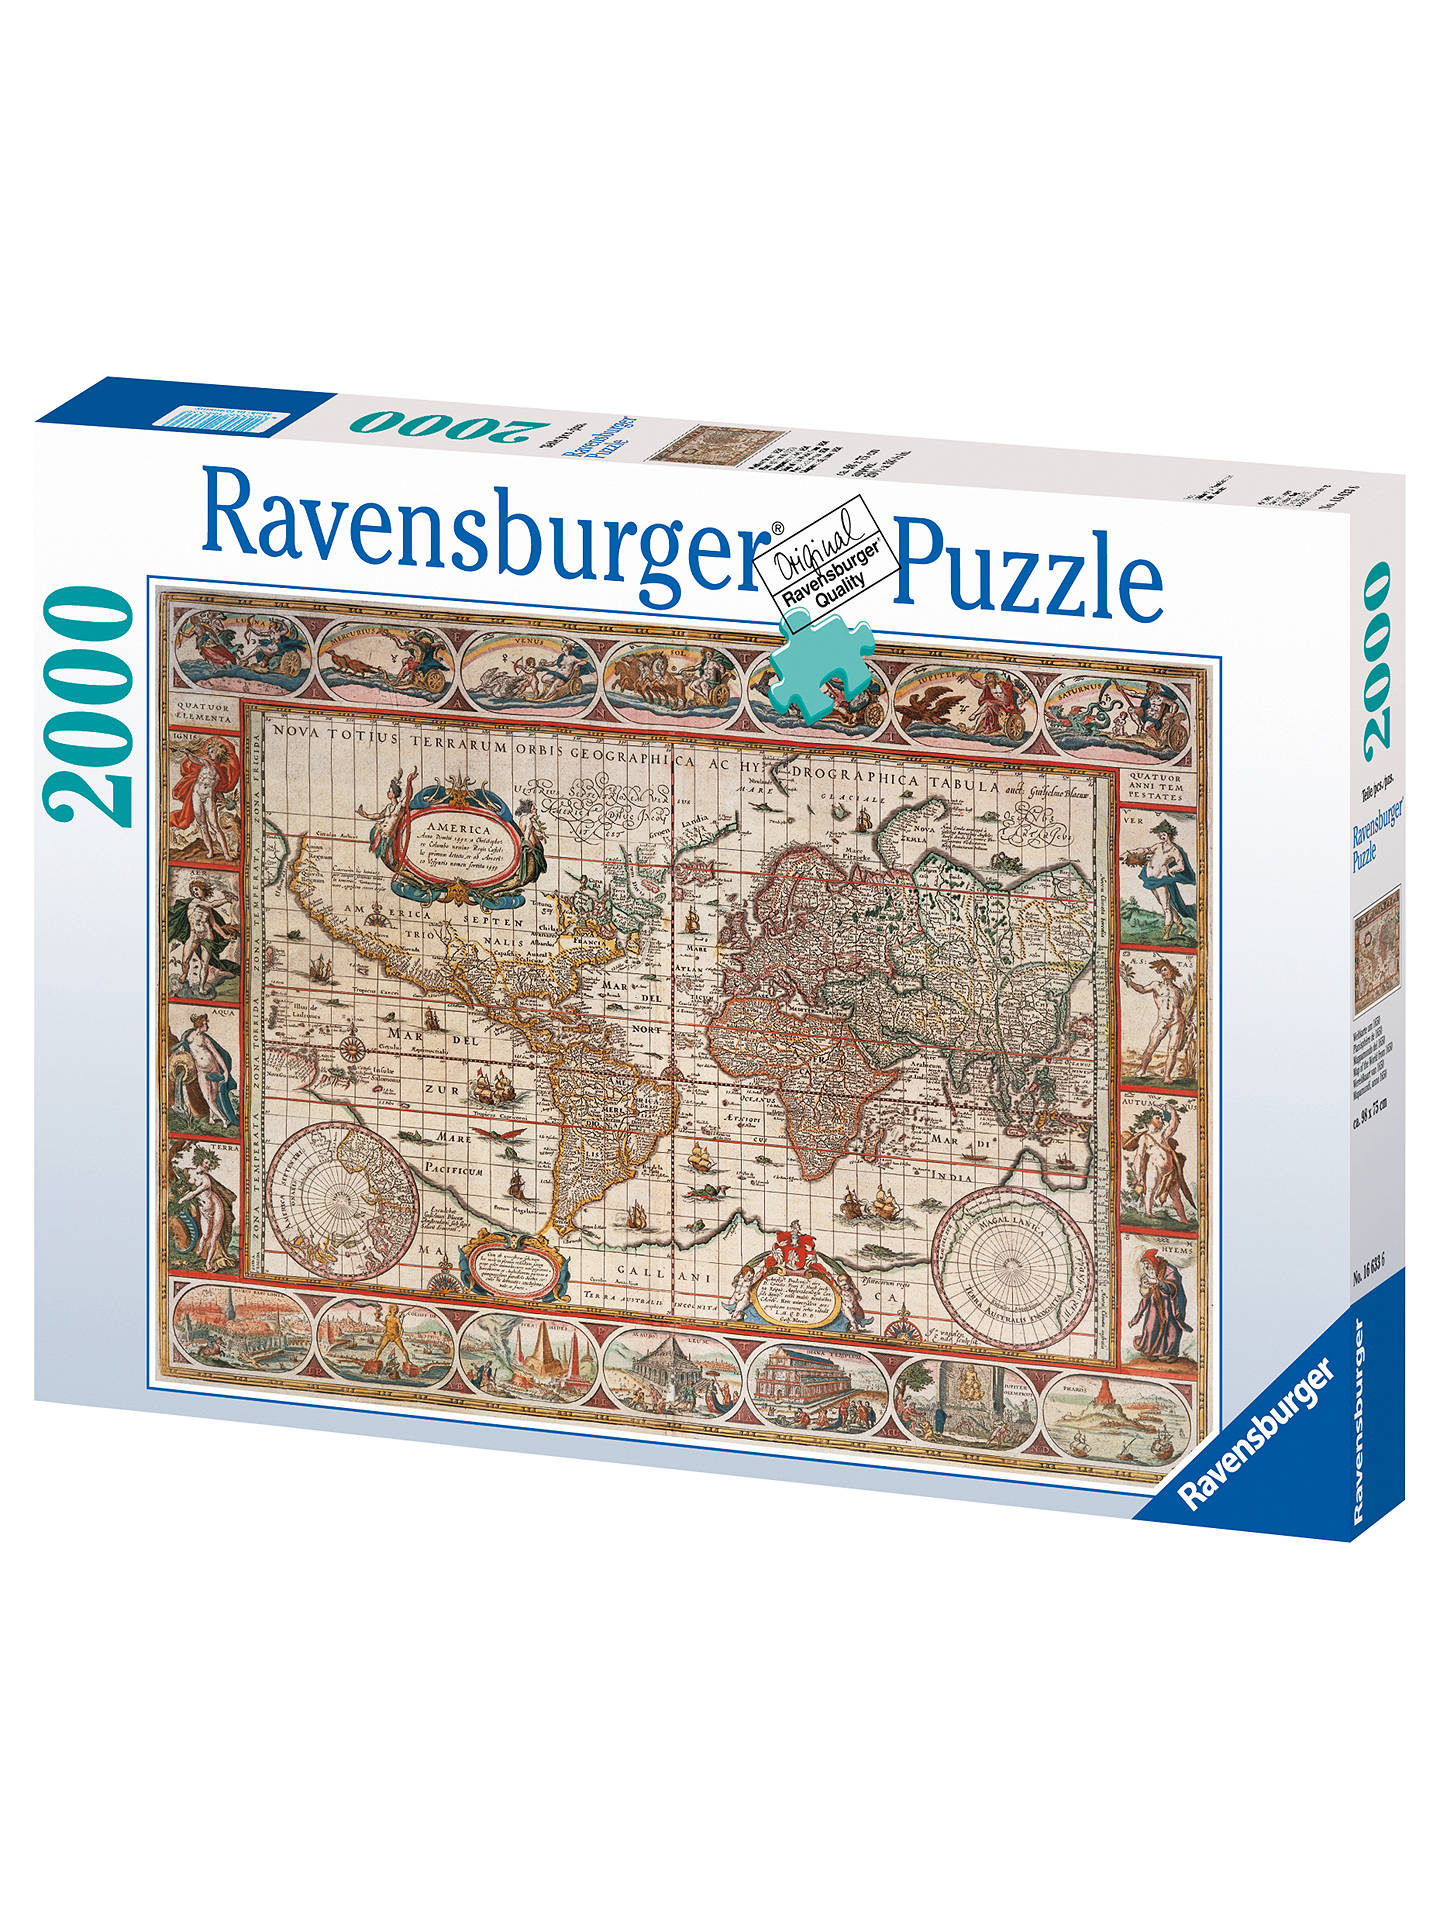 Ravensburger 1650 world map jigsaw puzzle 2000 pieces at john lewis buyravensburger 1650 world map jigsaw puzzle 2000 pieces online at johnlewis gumiabroncs Gallery